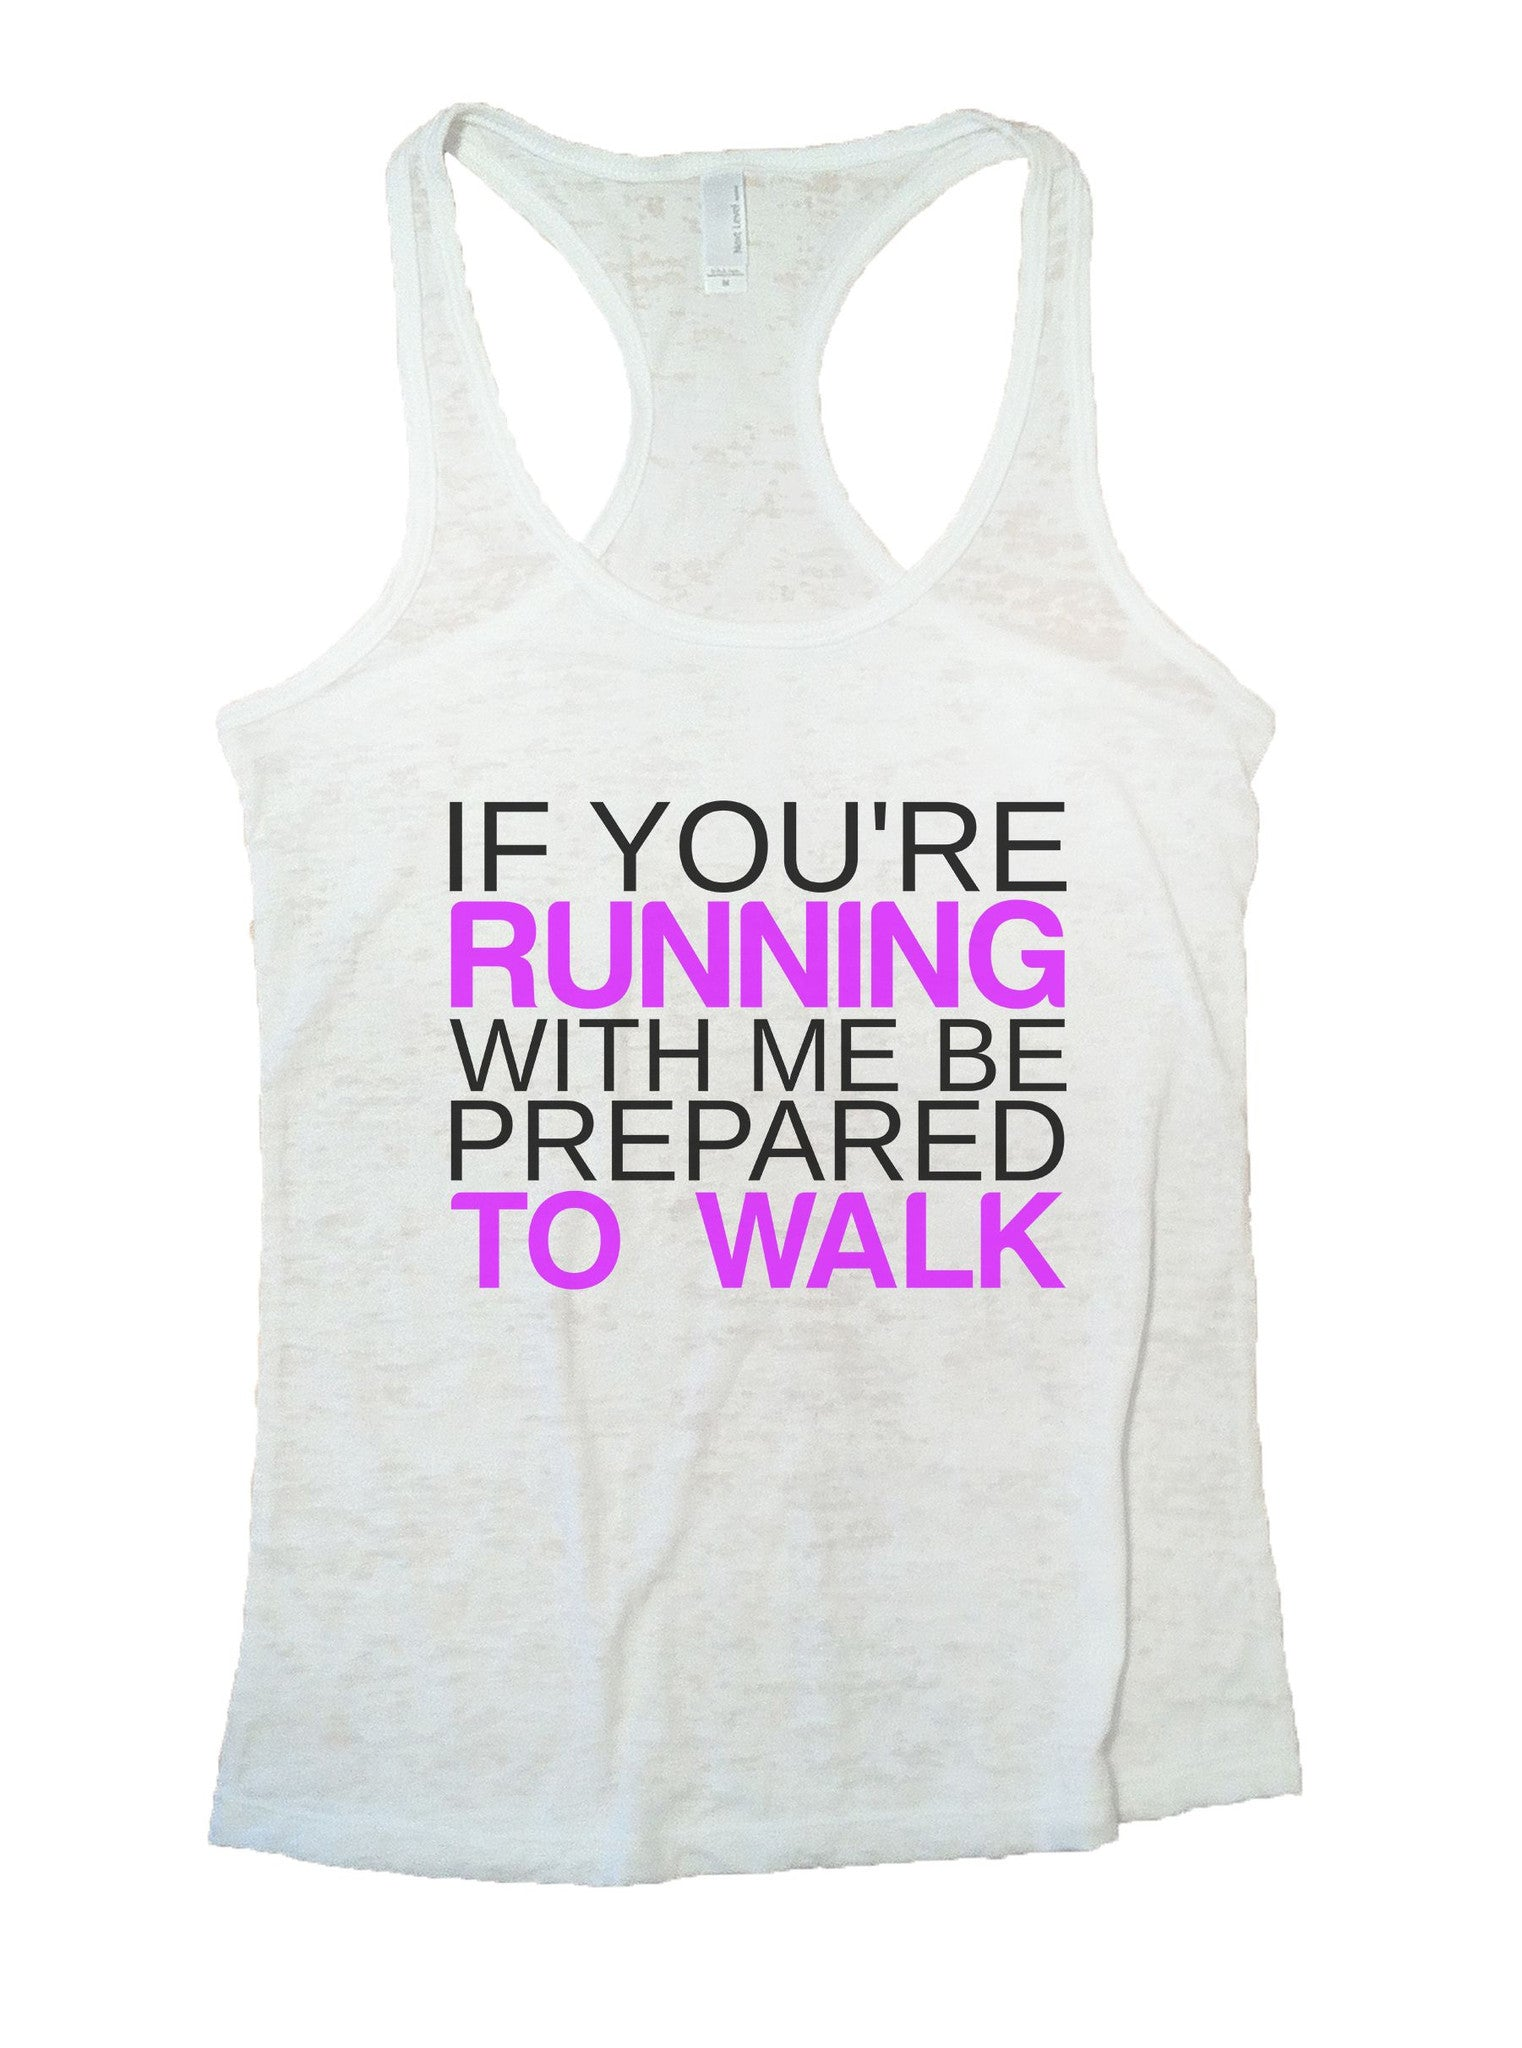 If You're Running With Me Be Prepared To Walk Burnout Tank Top By BurnoutTankTops.com - 858 - Funny Shirts Tank Tops Burnouts and Triblends  - 6